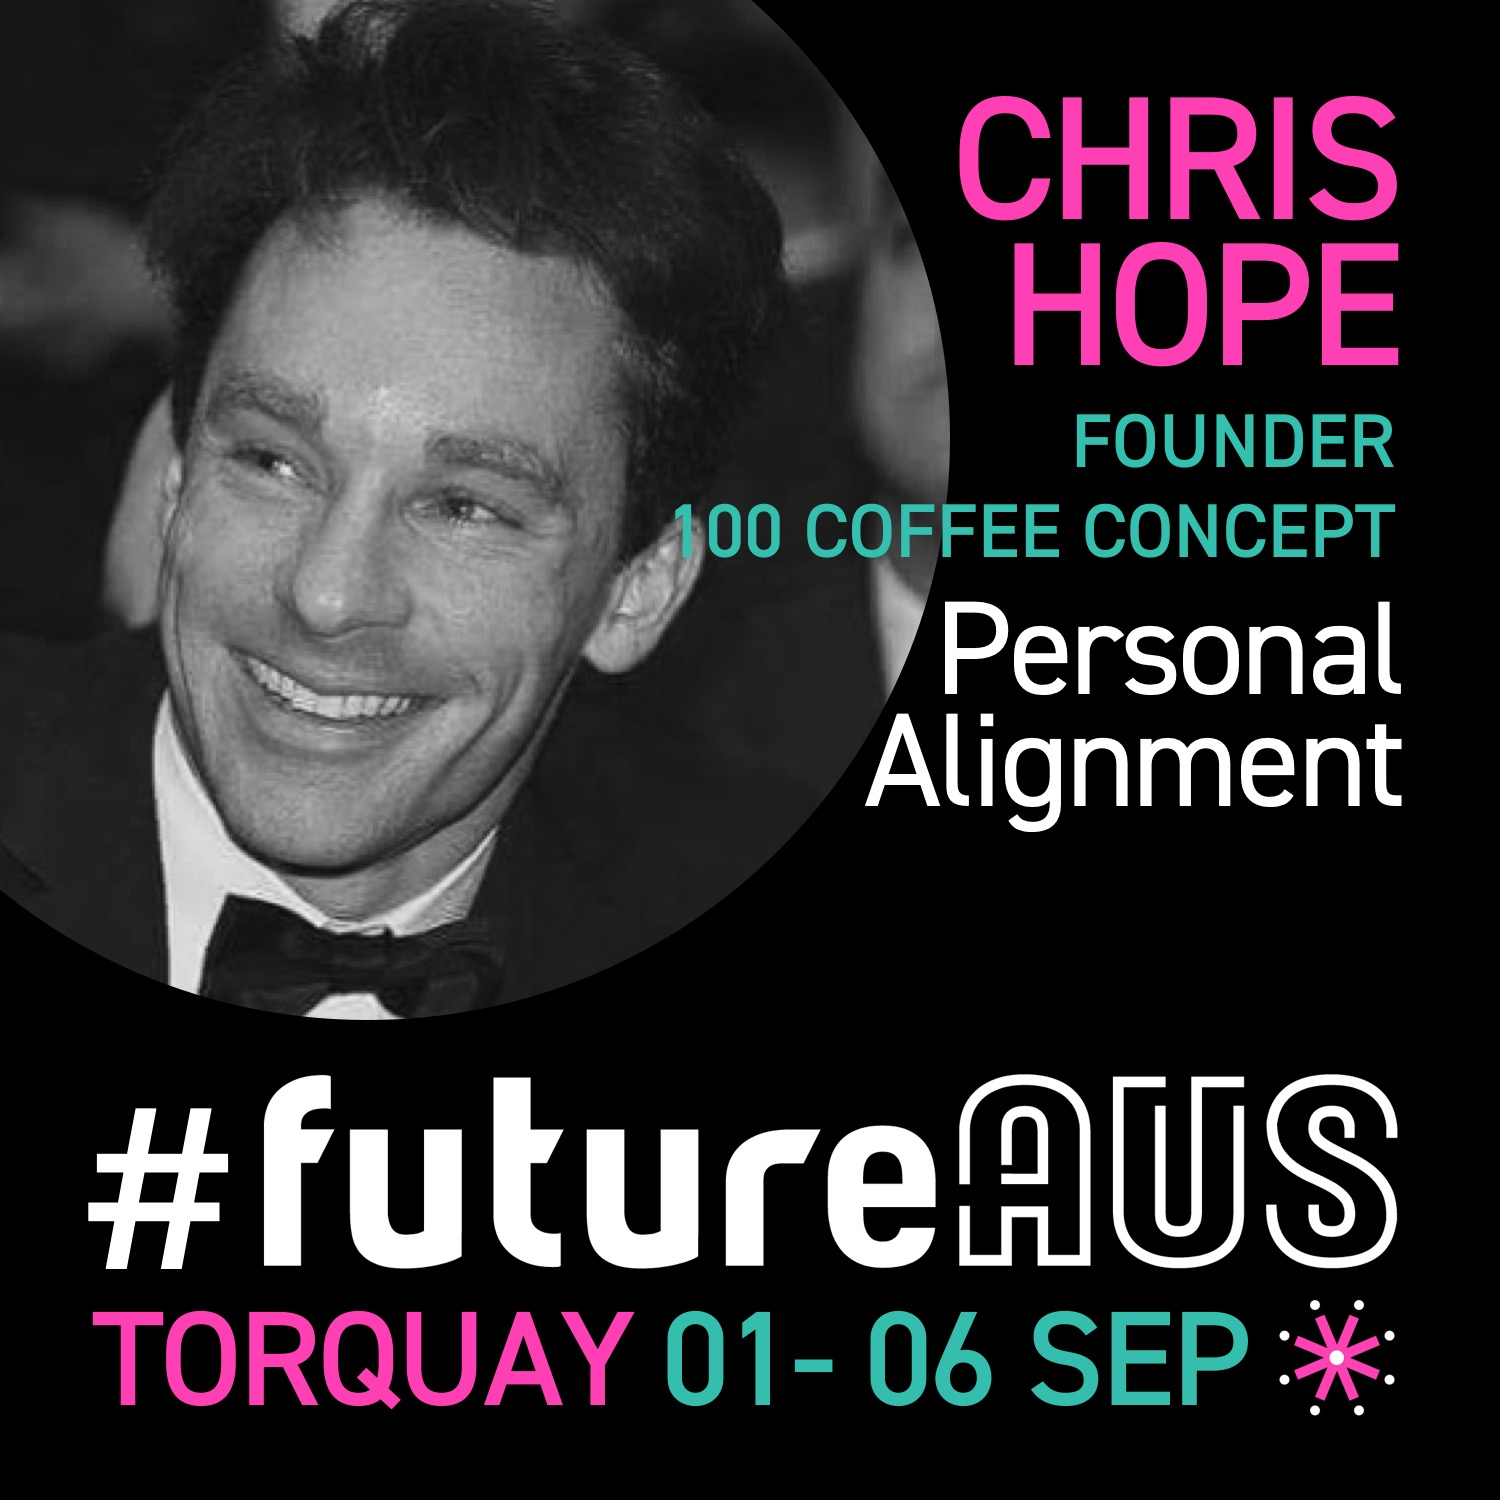 "Chris Hope  is founder of  100coffeeconcept.com  which is a movement to challenge our current views, values and understanding of the world. The process is to have 100 coffees in 100 weeks with someone new around the world. This project took Chris to countries across Europe and Asia where he learnt amazing stories, got inspired, faced fears and limiting beliefs. Chris is passionate about social innovation and systems change. Having worked in Australia, the UK and South East Asia Chris work has helped large NGO (such as the UN) and smaller social purpose organisations. Chris currently sits on an advisory board of  Sourcing Justice  a social enterprise based at the Cambridge Judge Business School, UK. Chris and his team will run a live 100 Coffee movement activity at #futureAUS Torquay and talk about the imporantance of "" personal alignment """